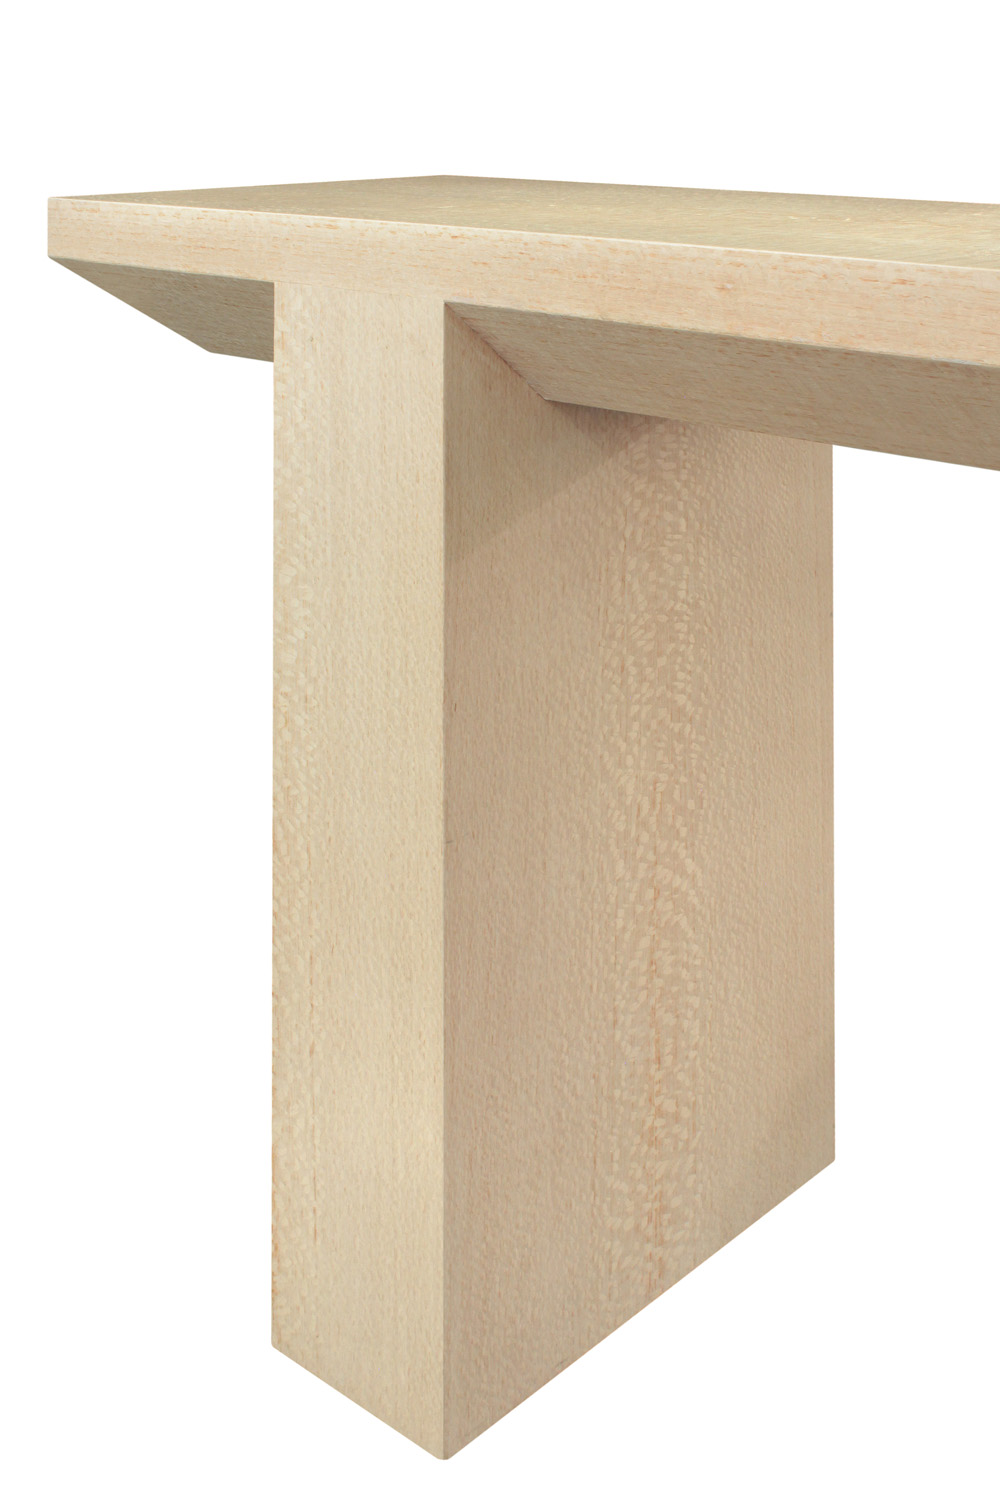 Springer 120 Altar Style lacewood consoletable99 detail1 hires.jpg